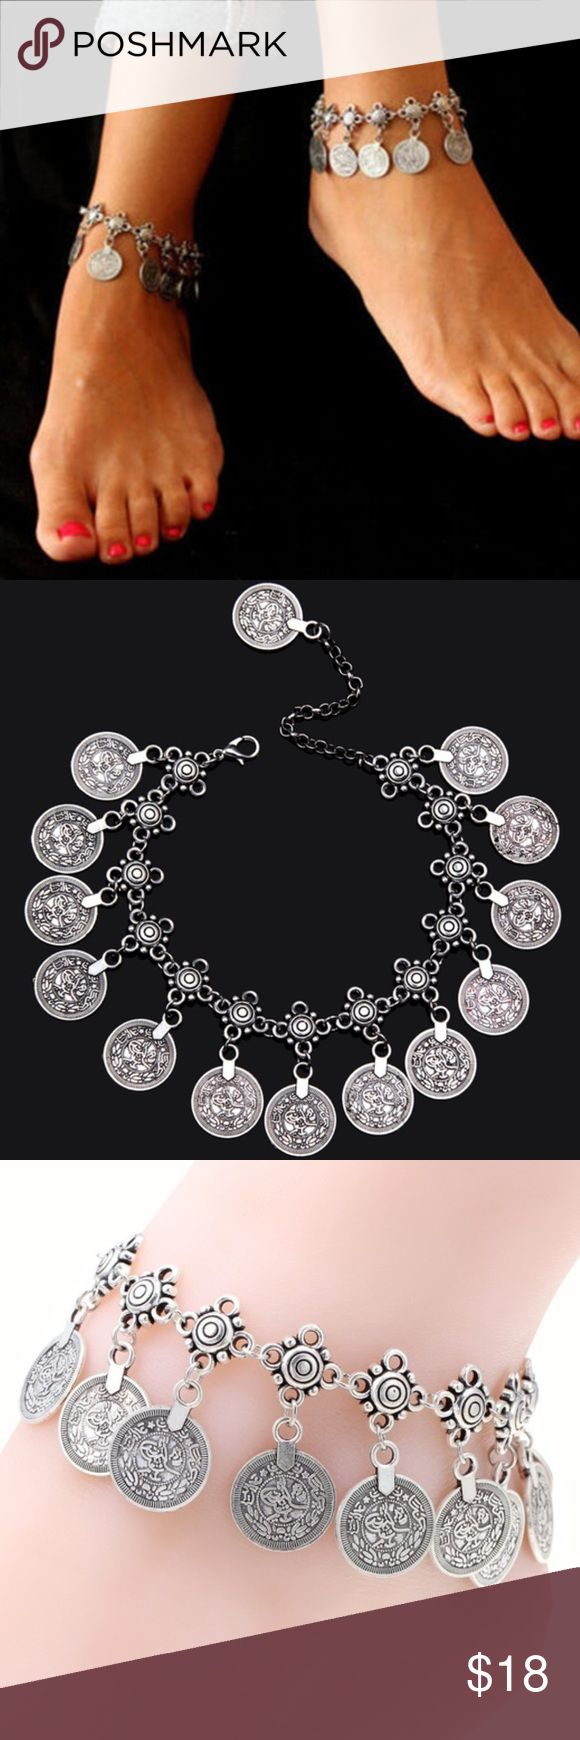 Bohemian Boho Turkish Coin Anklet *One Piece* New New in package. Perfect for summer and the beach! Antique silver, Turkish coin anklet. Can also be worn as a bracelet. *one piece*. Smoke free home. 🌺Thank you for shopping my closet 🌺 Jewelry